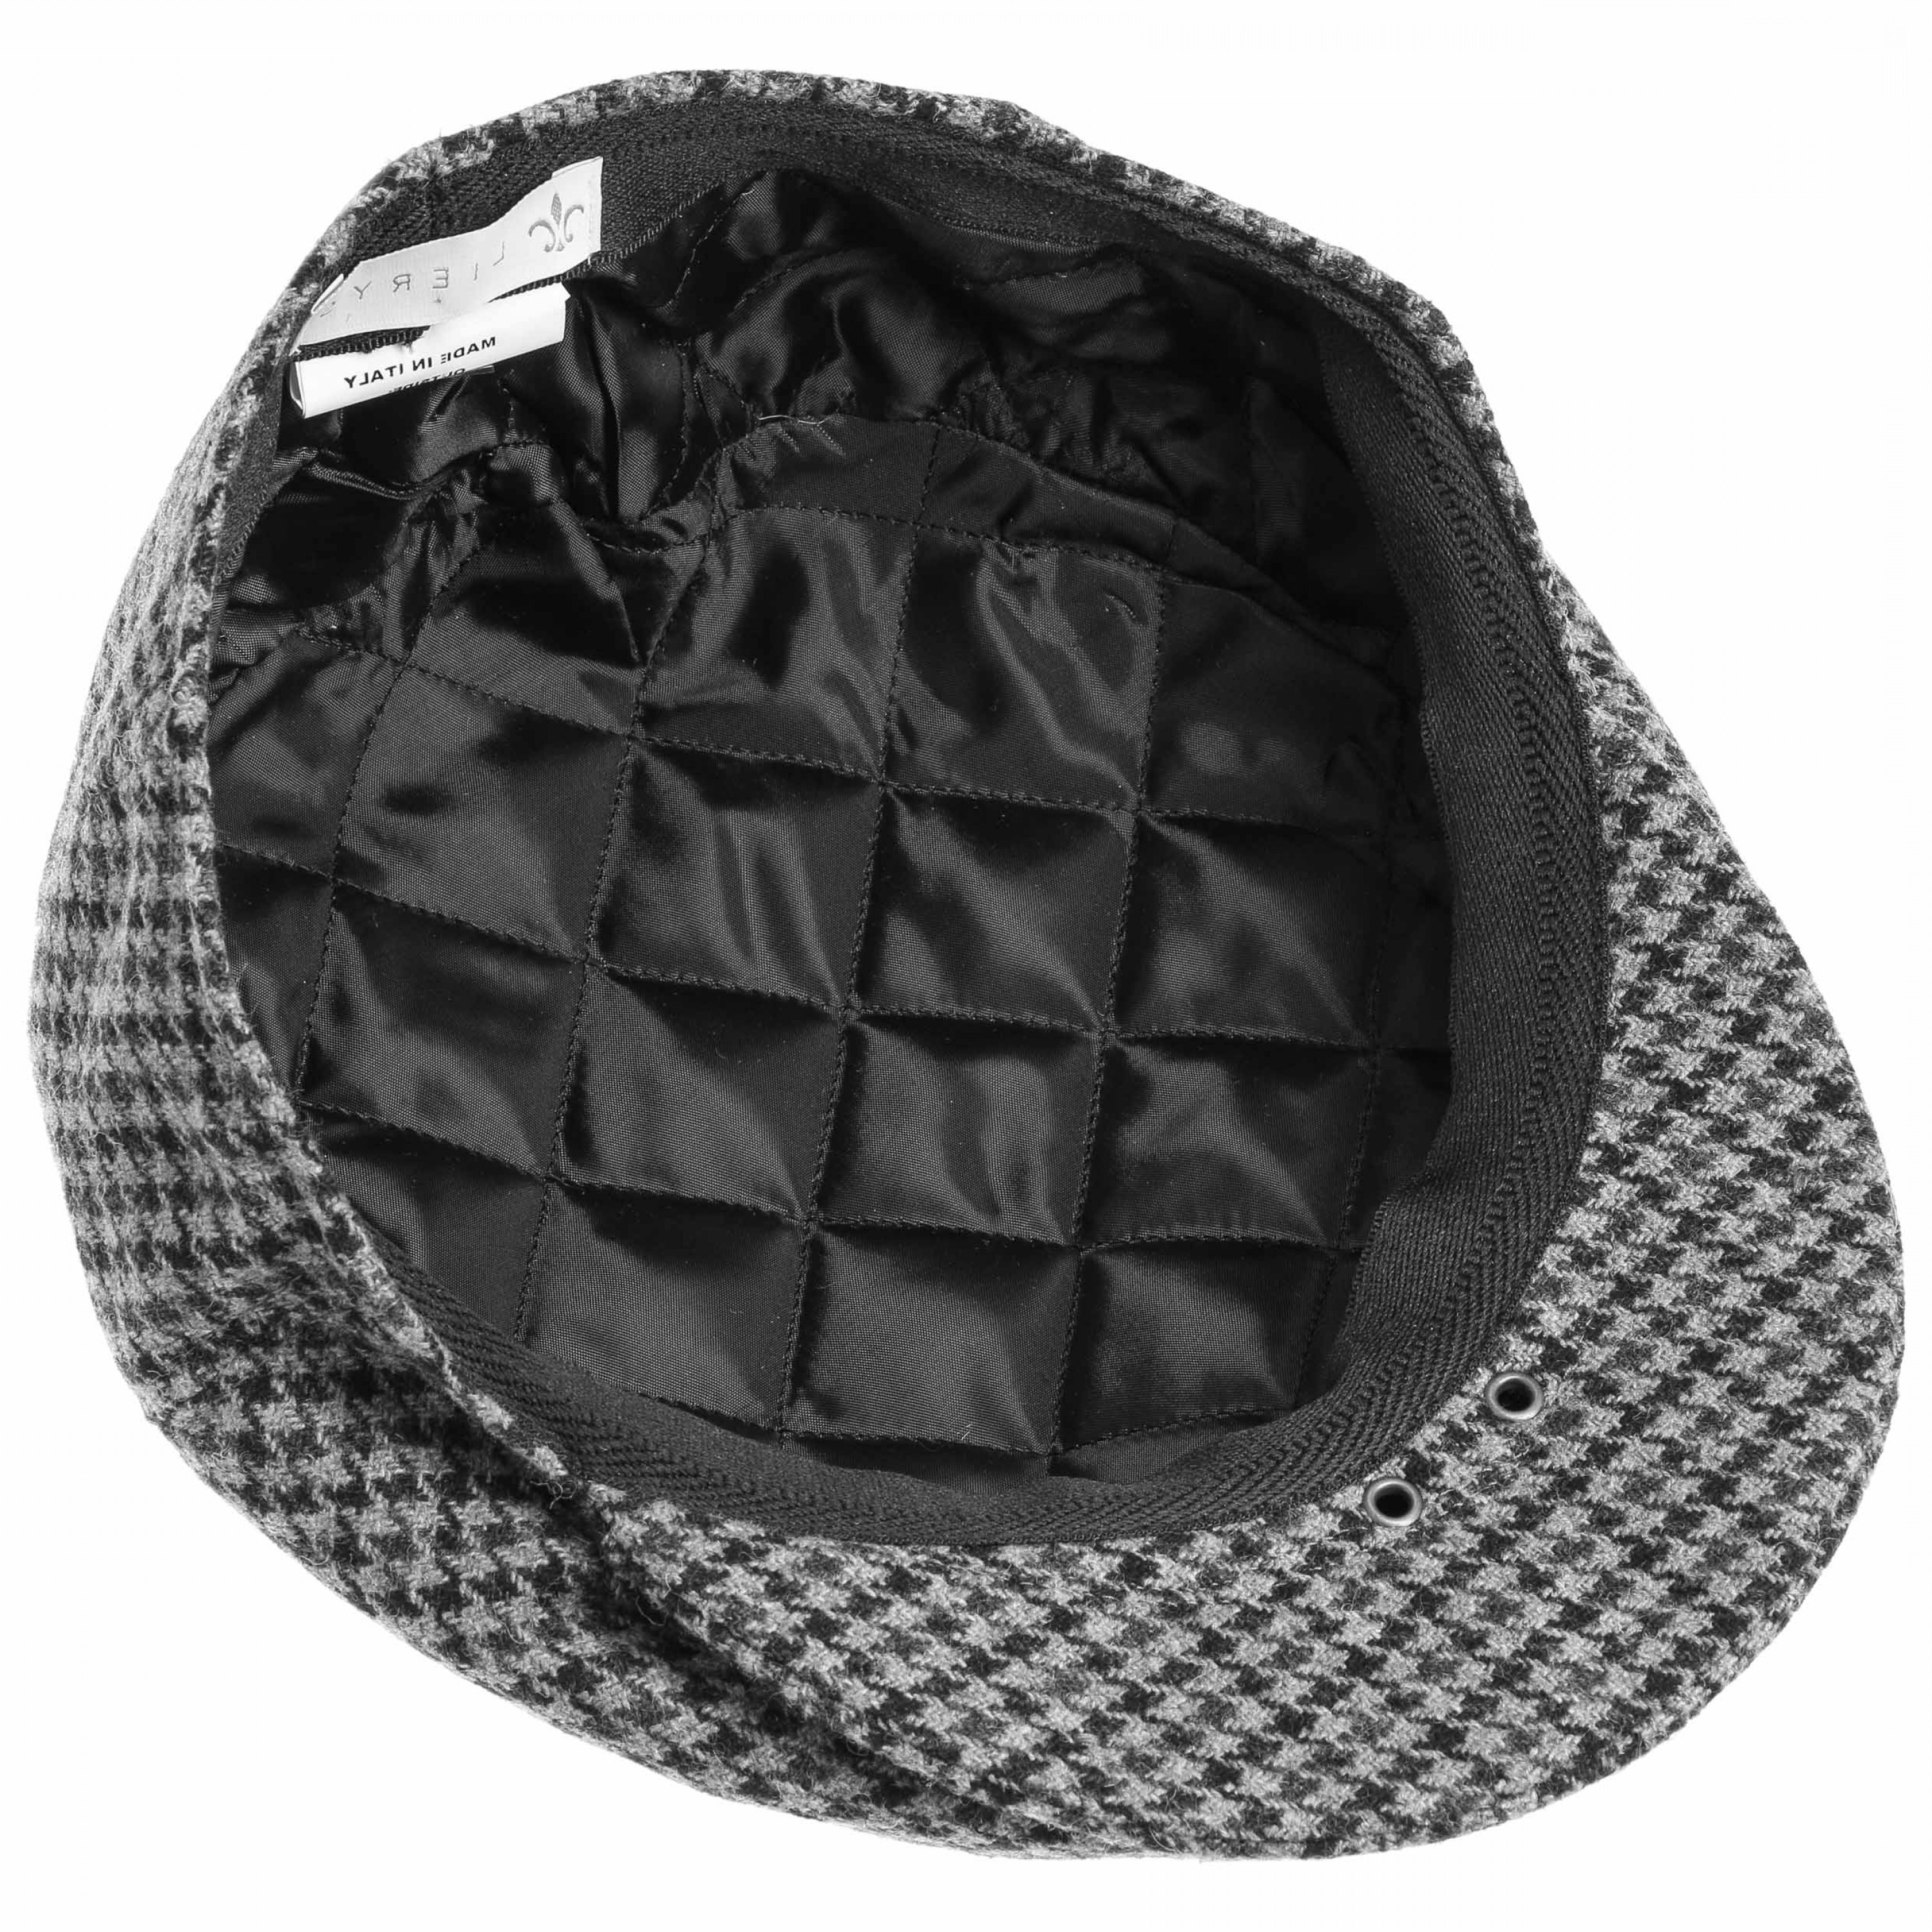 Houndstooth Hats Vector: Britain Houndstooth Flat Cap By Lierys